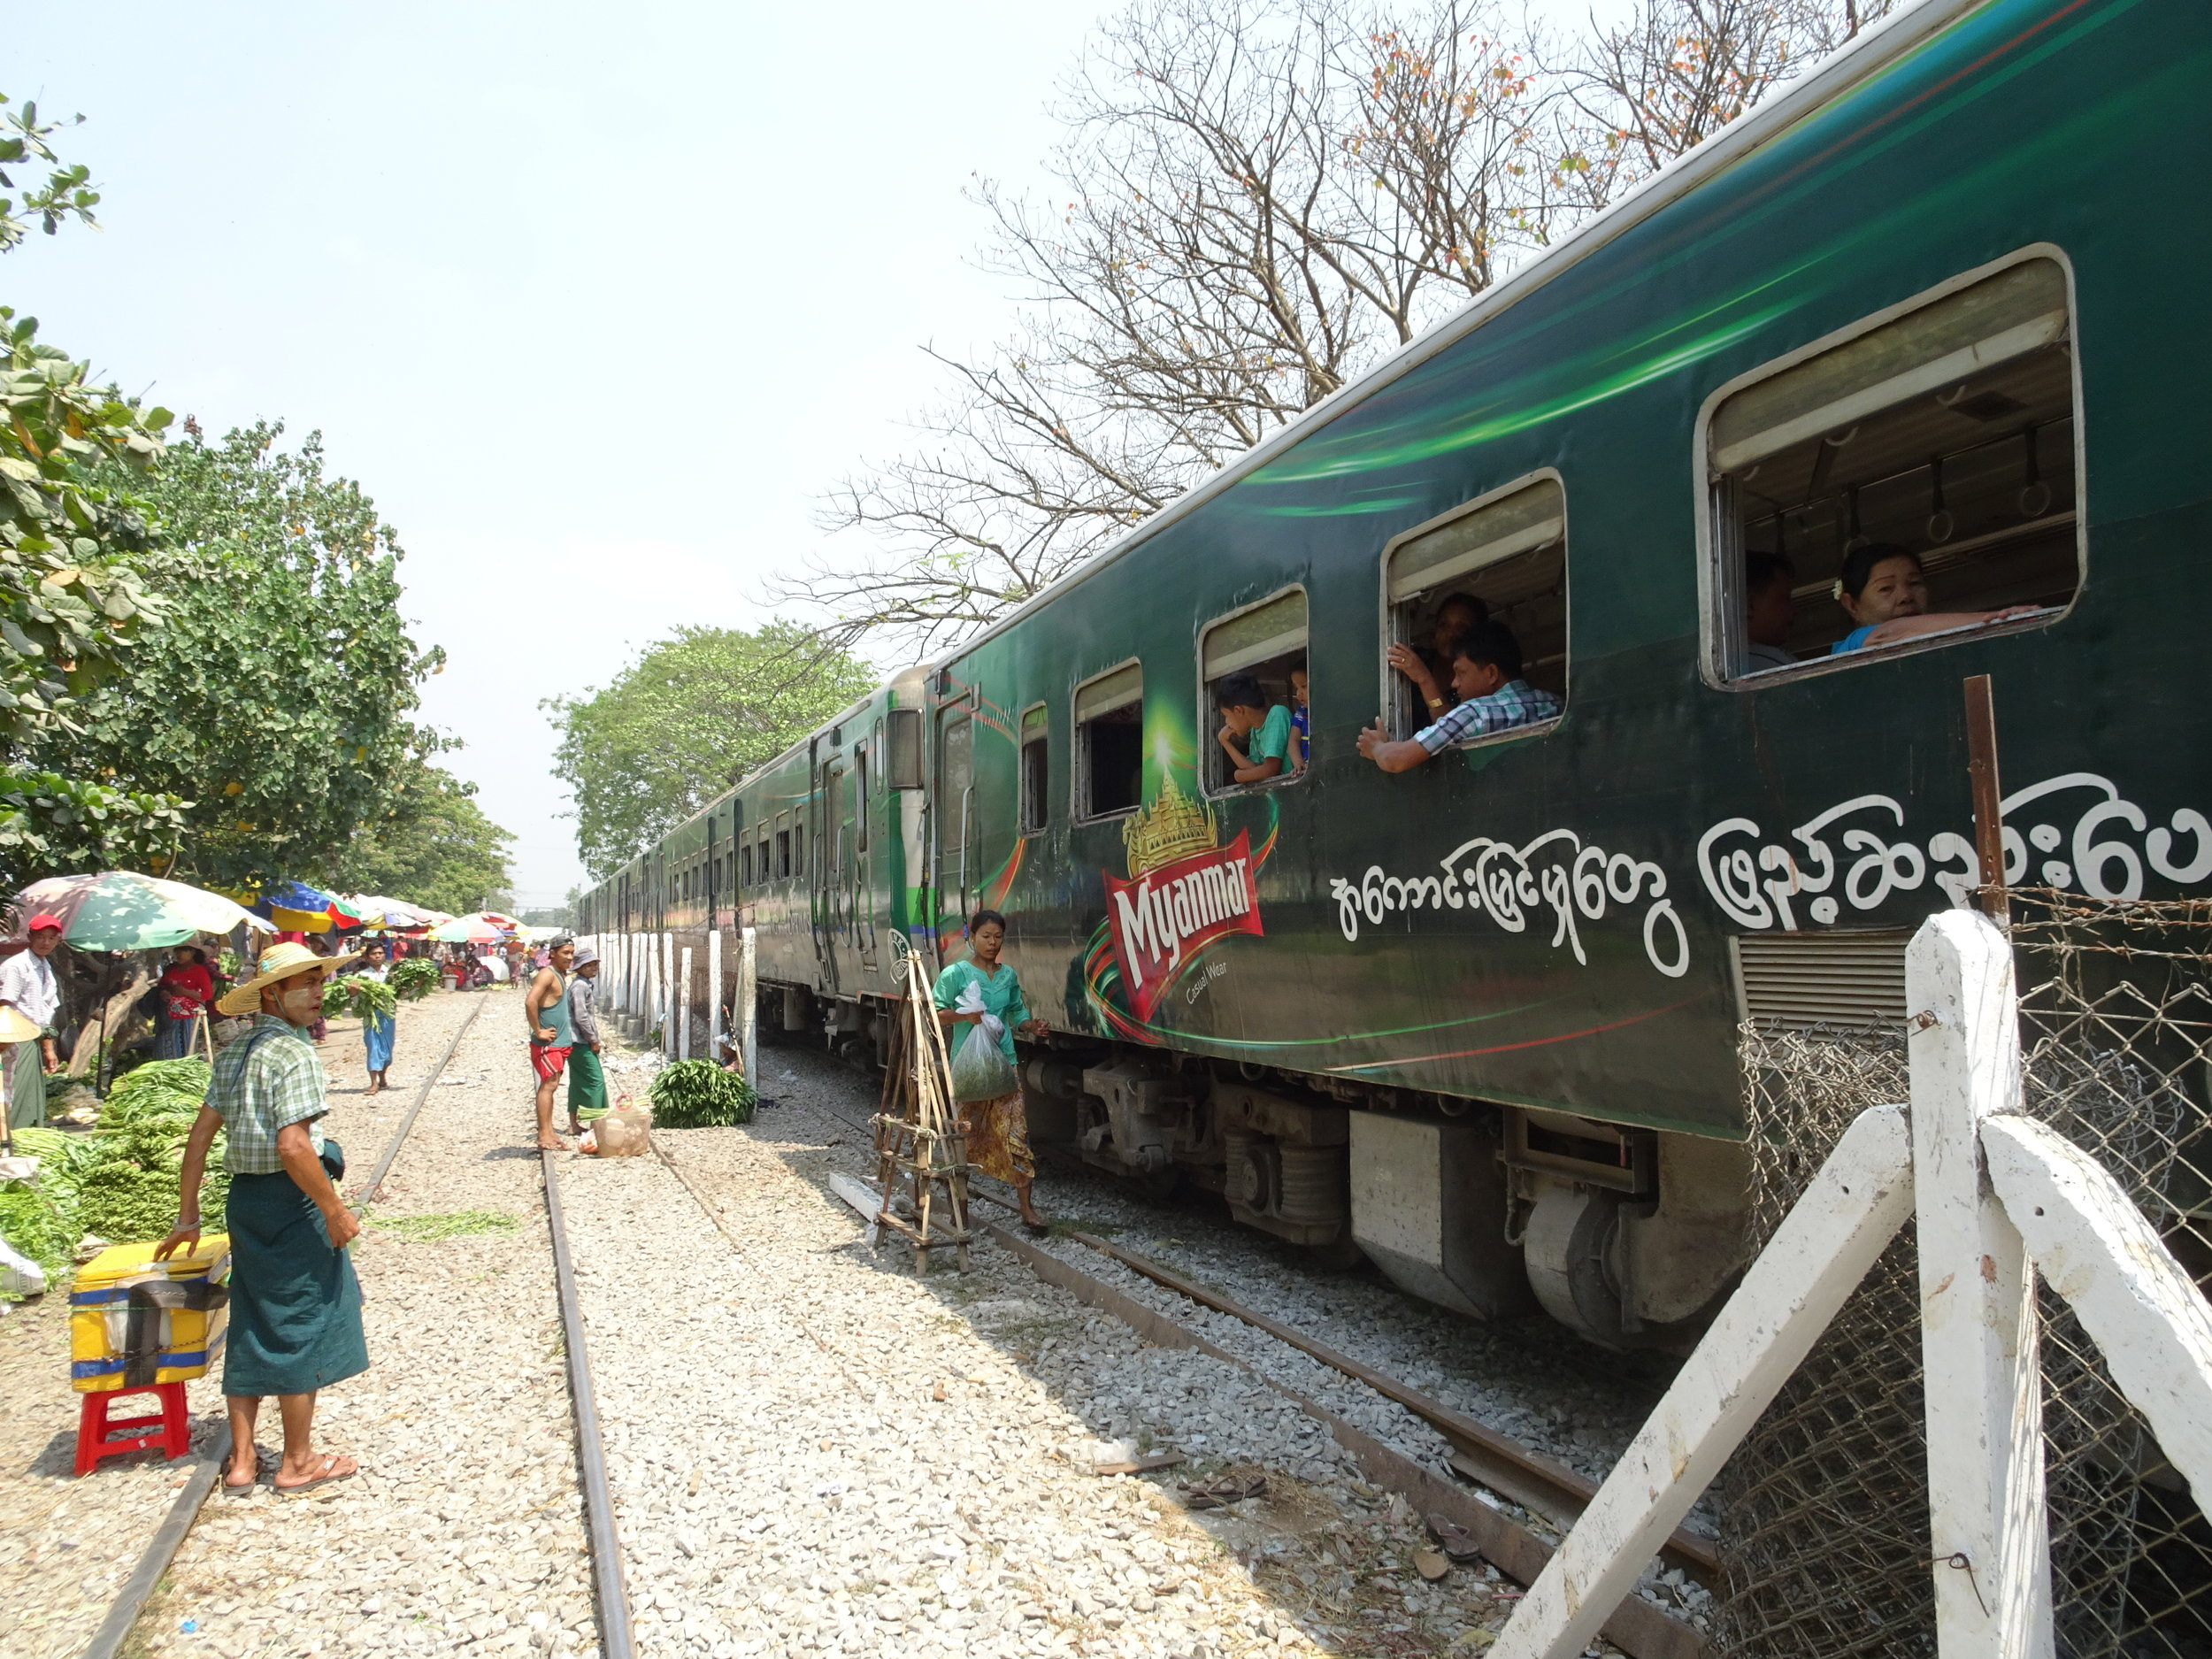 Train travel Myanmar. Twelve misconceptions and the truth behind them.